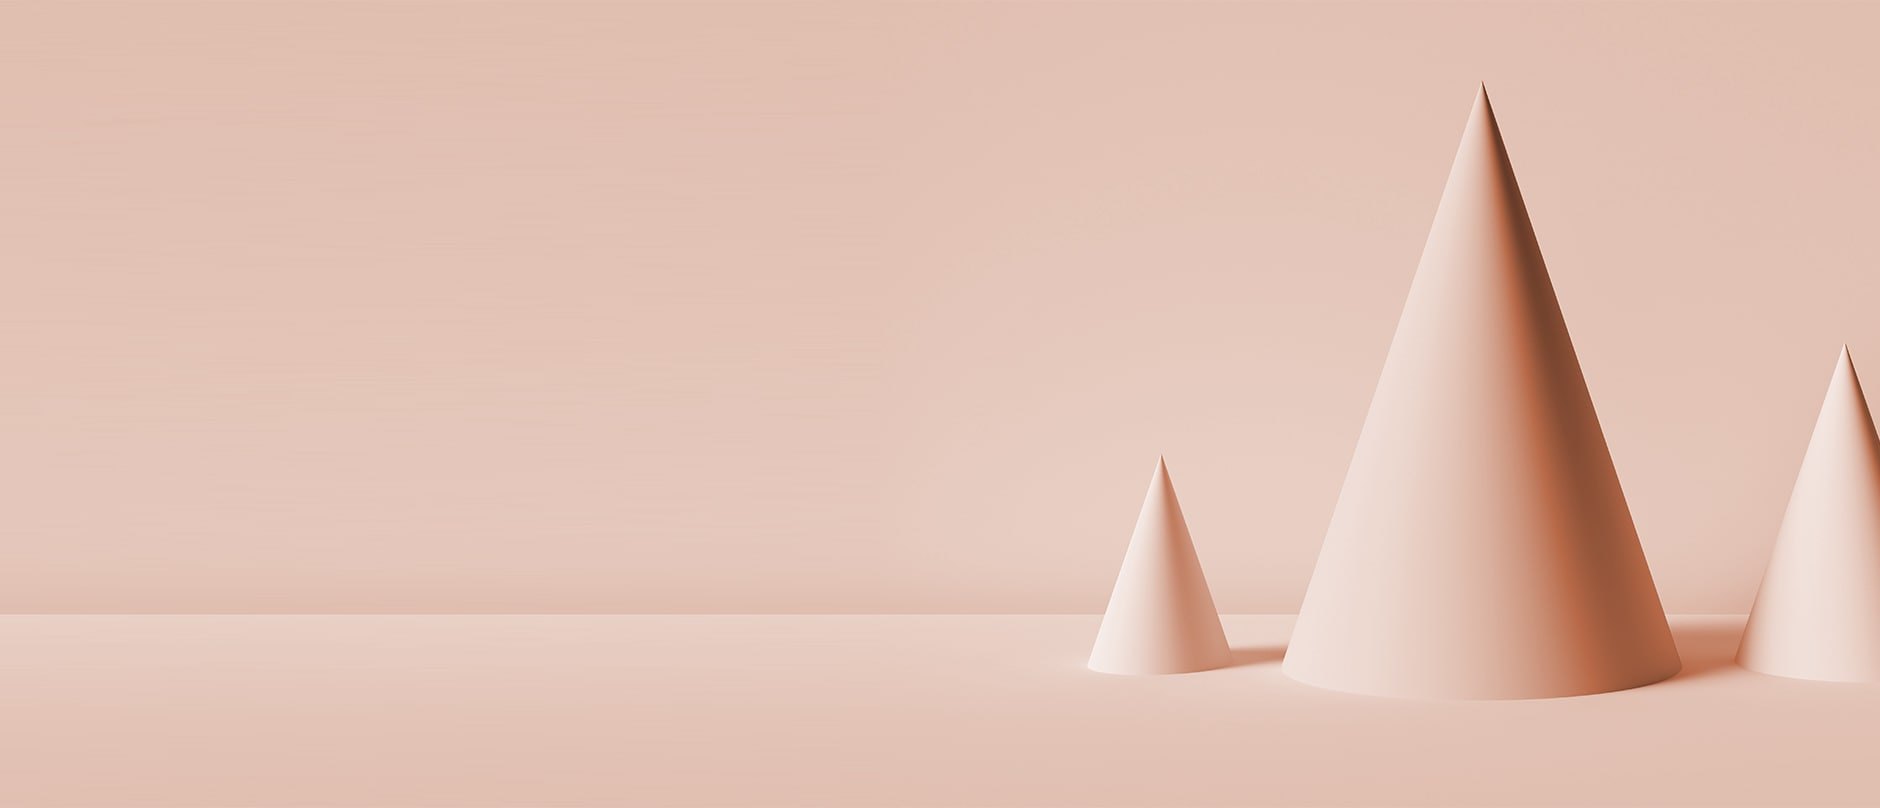 light pink cones on light pink background